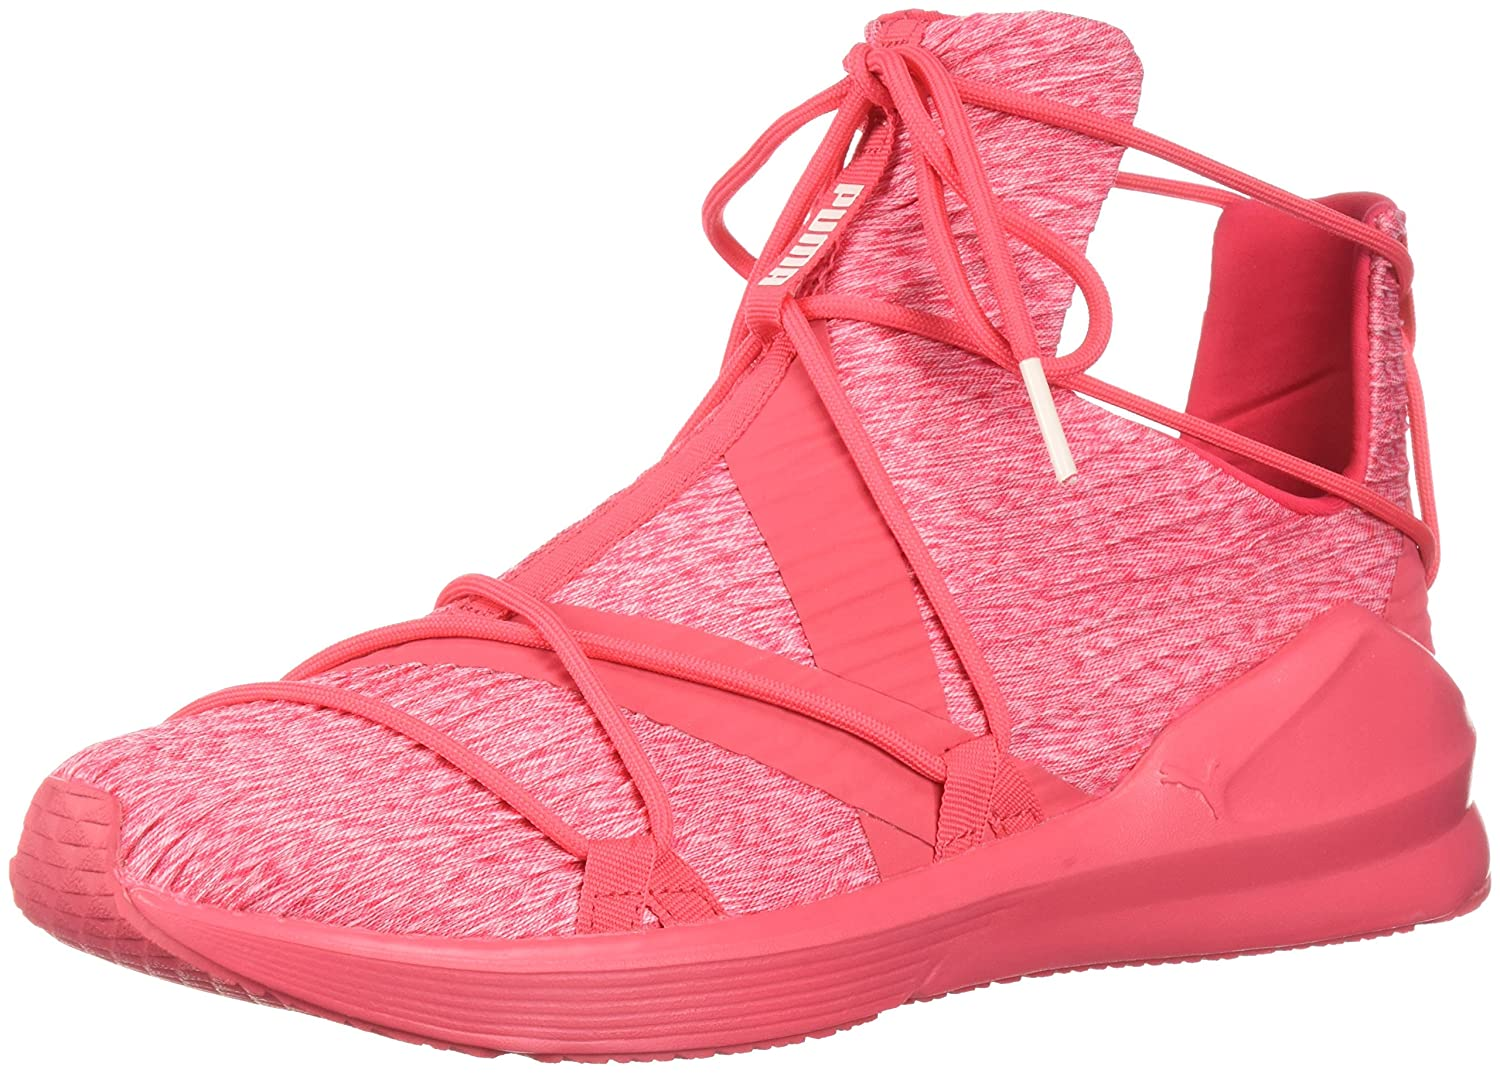 PUMA Women's Fierce Rope Pleats Wn Sneaker B072MZL8S5 7.5 B(M) US|Paradise Pink-paradise Pink